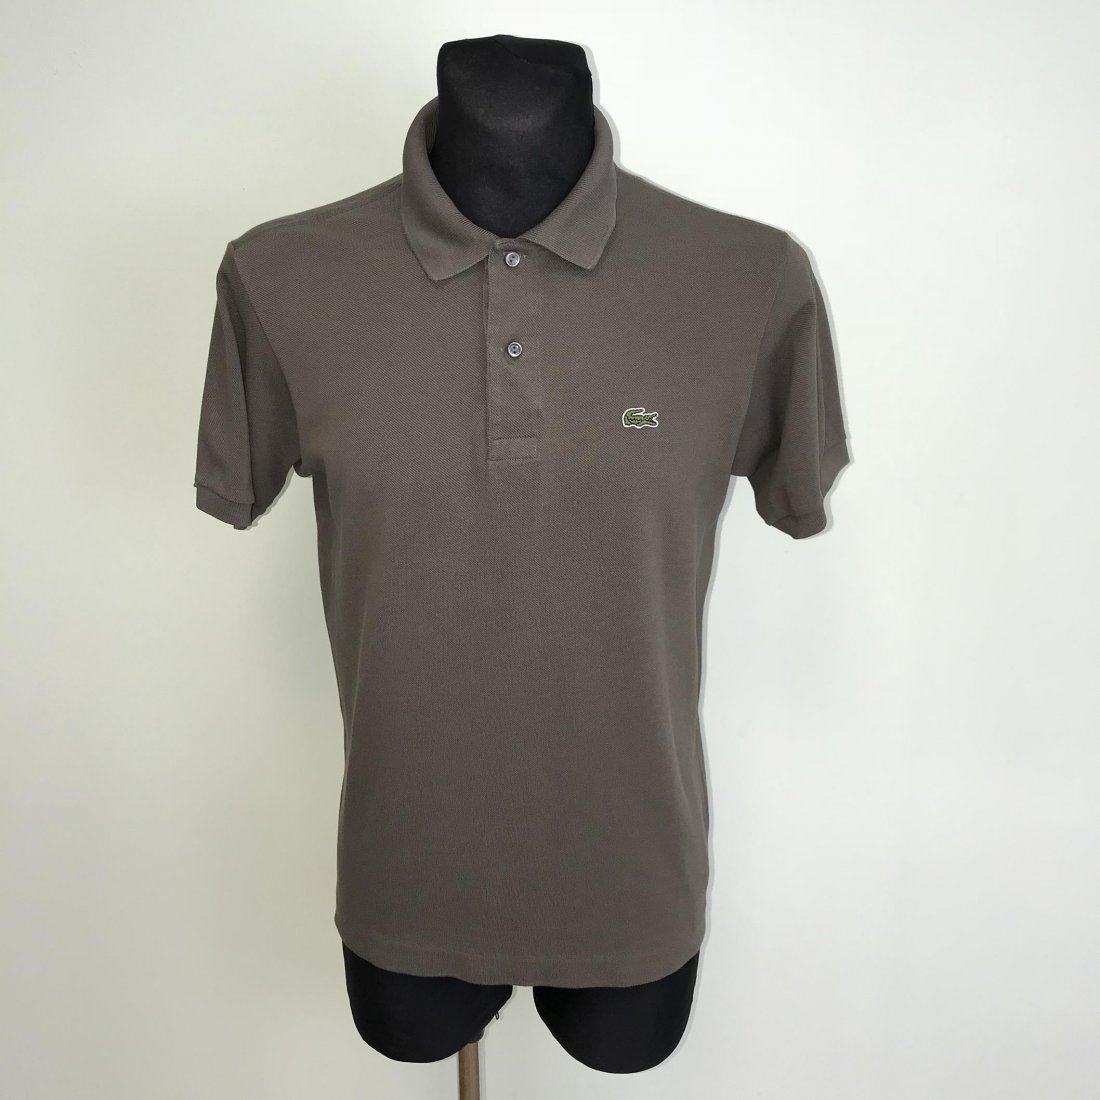 fbeef021d005d Men's Lacoste Polo Shirt Size 3 / S on LiveAuctioneers